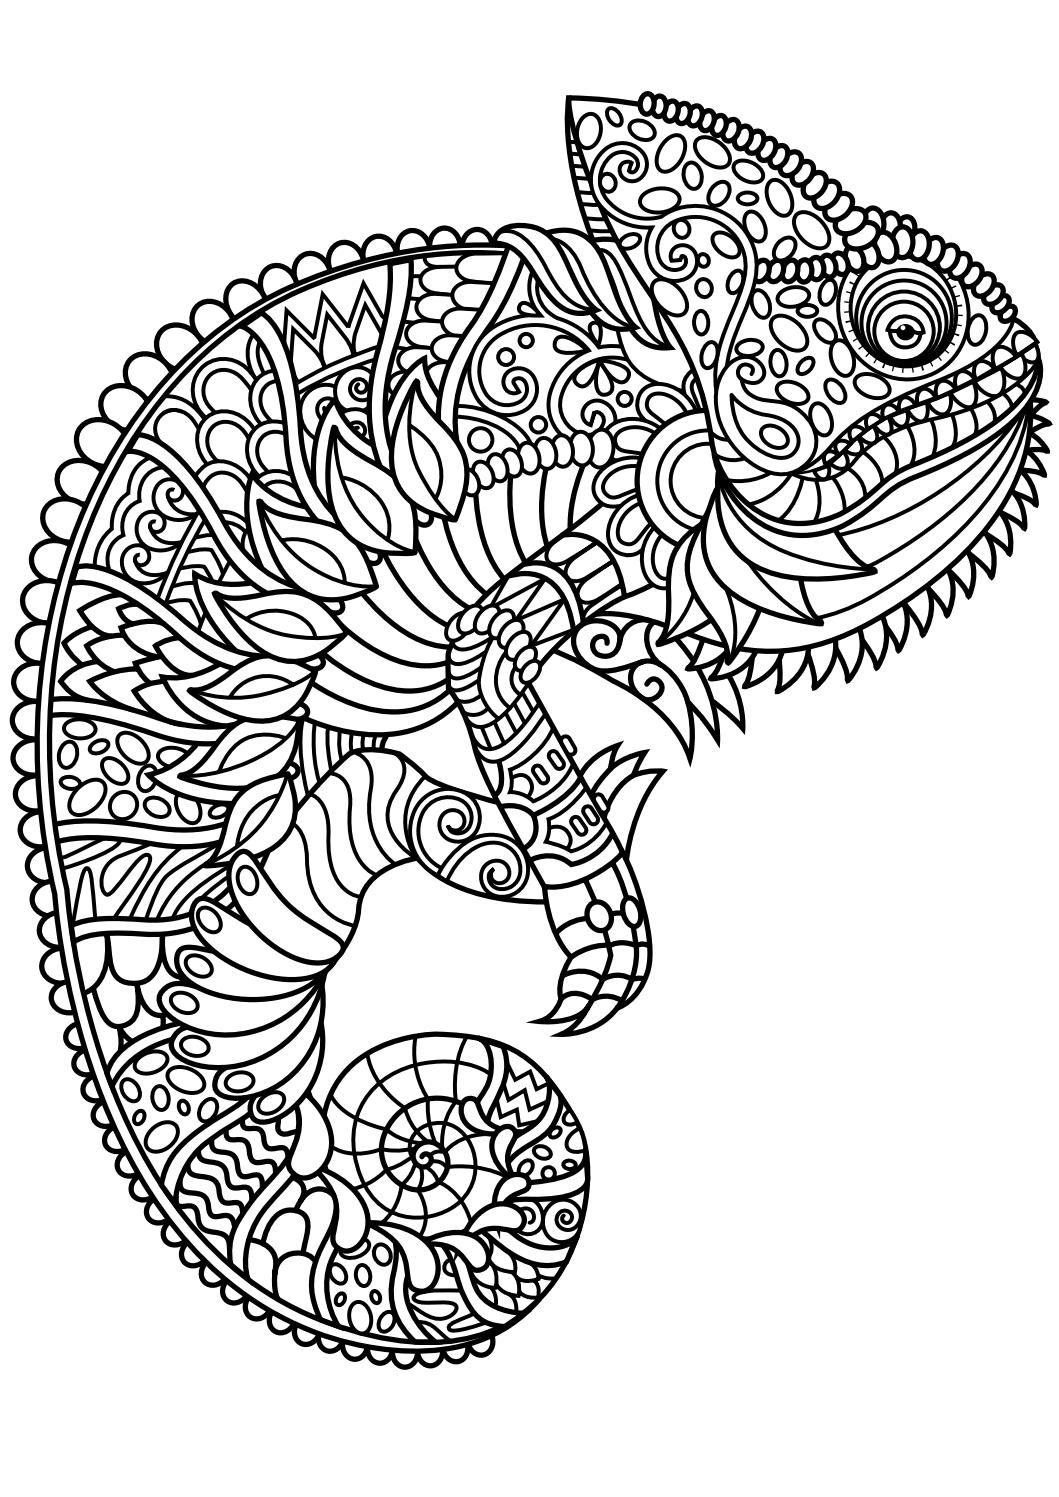 Animal coloring pages pdf Coloring Animals Coloring